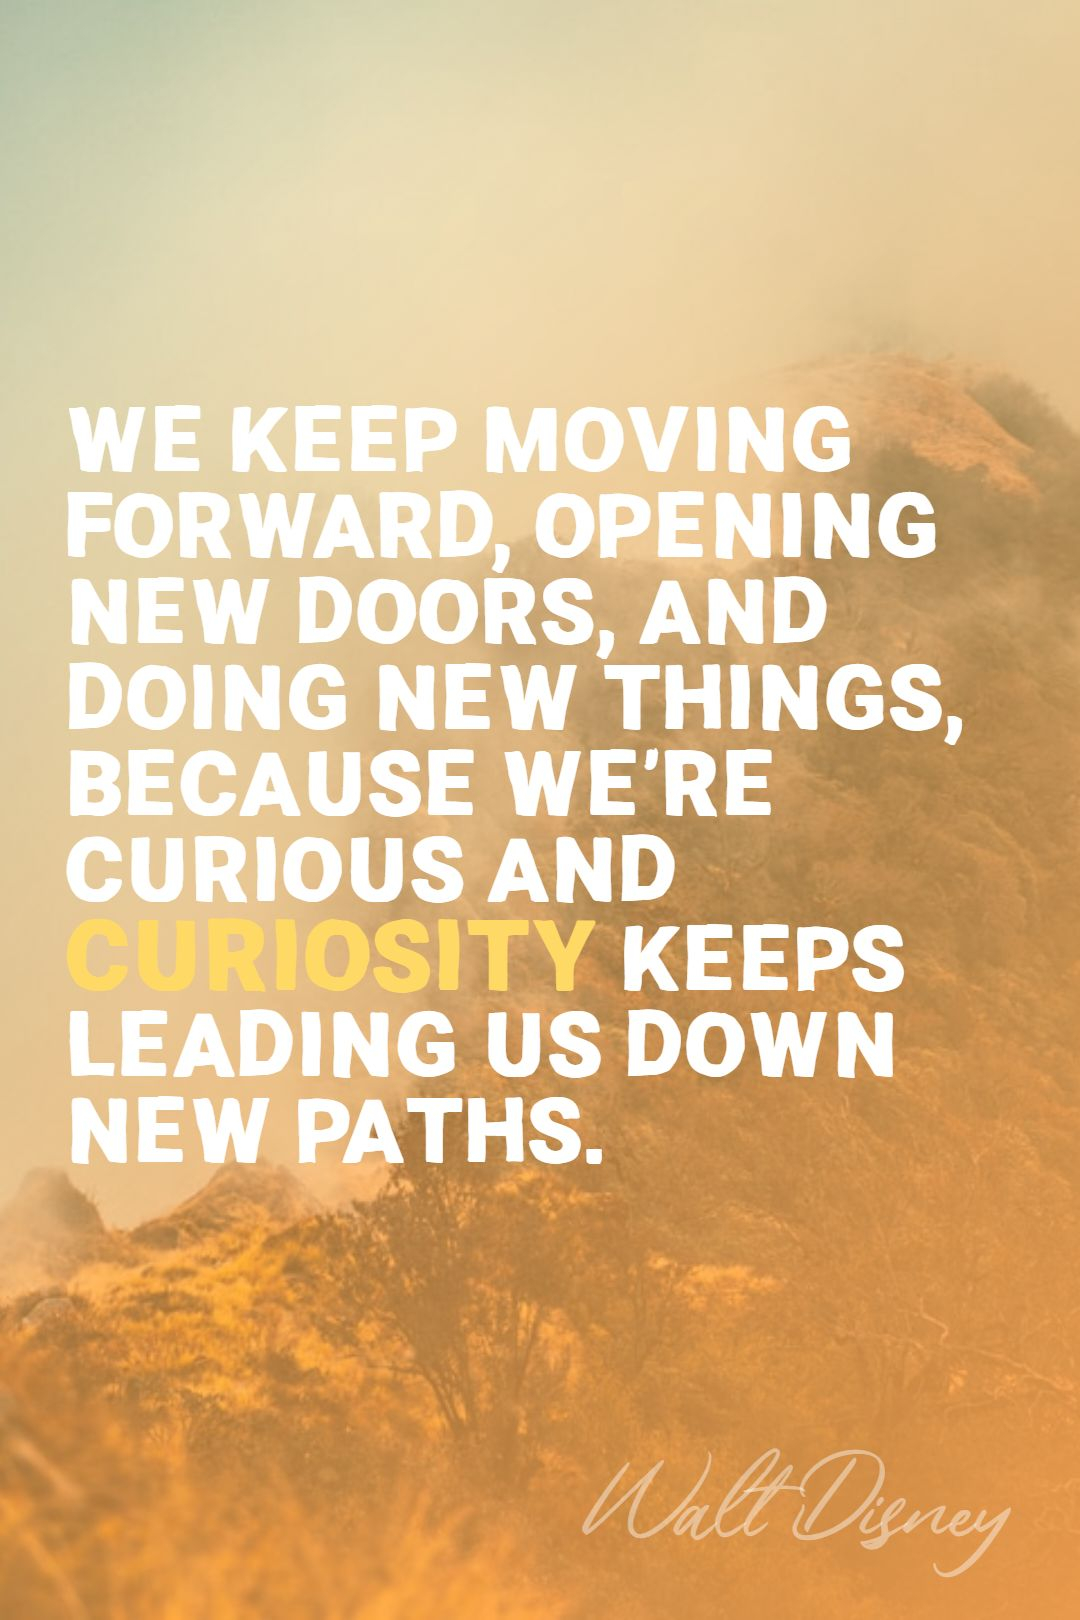 Quotes image of We keep moving forward, opening new doors, and doing new things, because we're curious and curiosity keeps leading us down new paths.